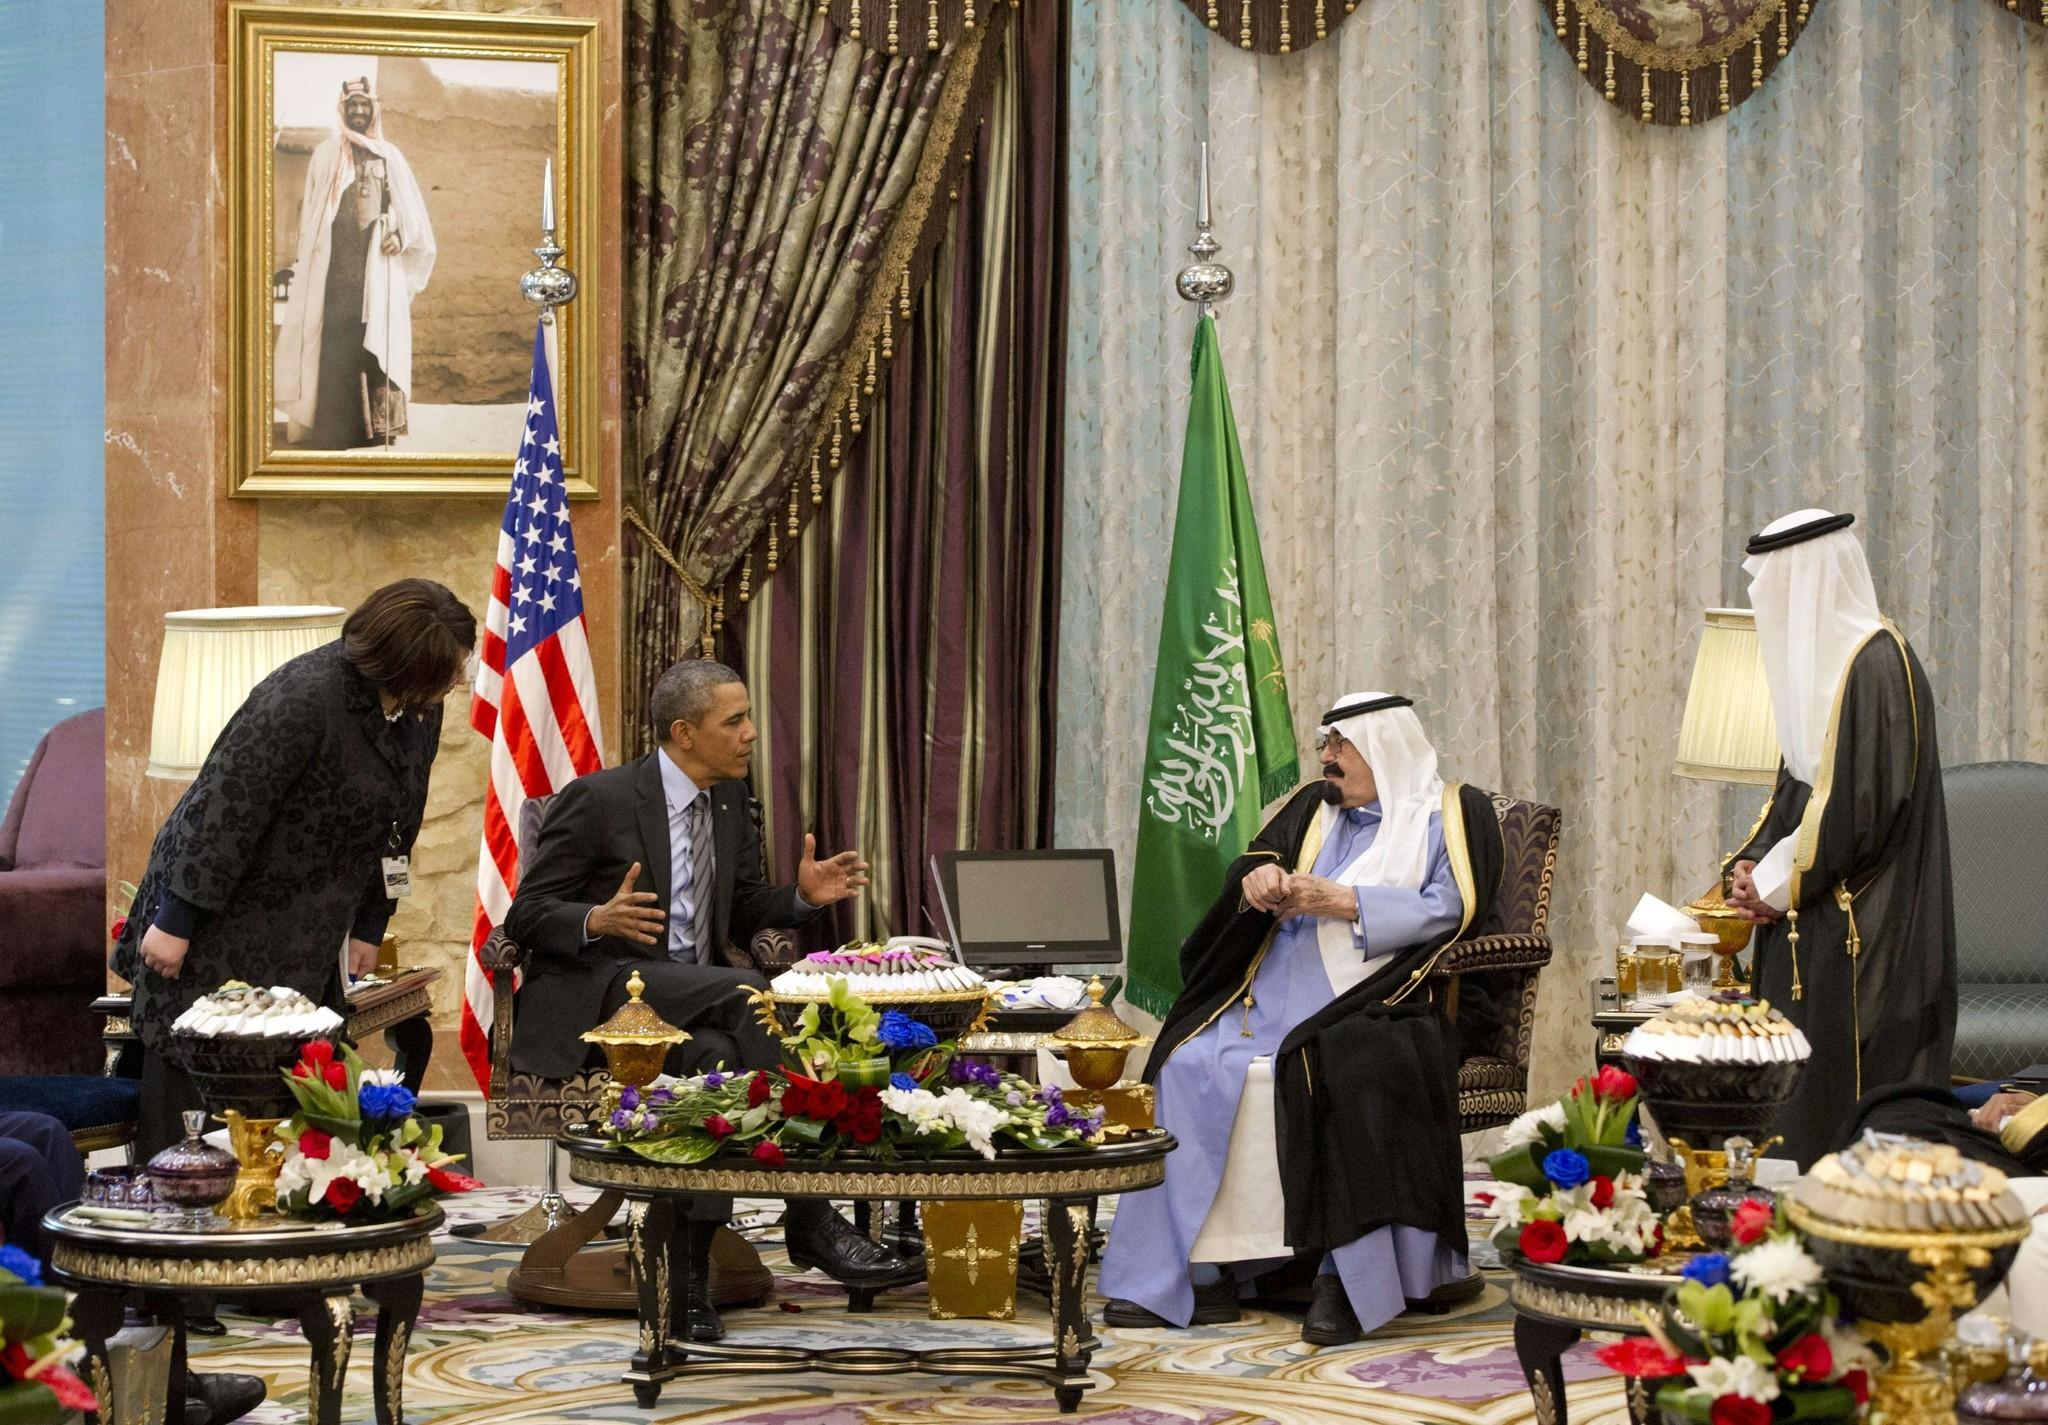 President Obama and Saudi King Abdullah meet with interpreters nearby at the monarch's desert camp northeast of Riyadh.